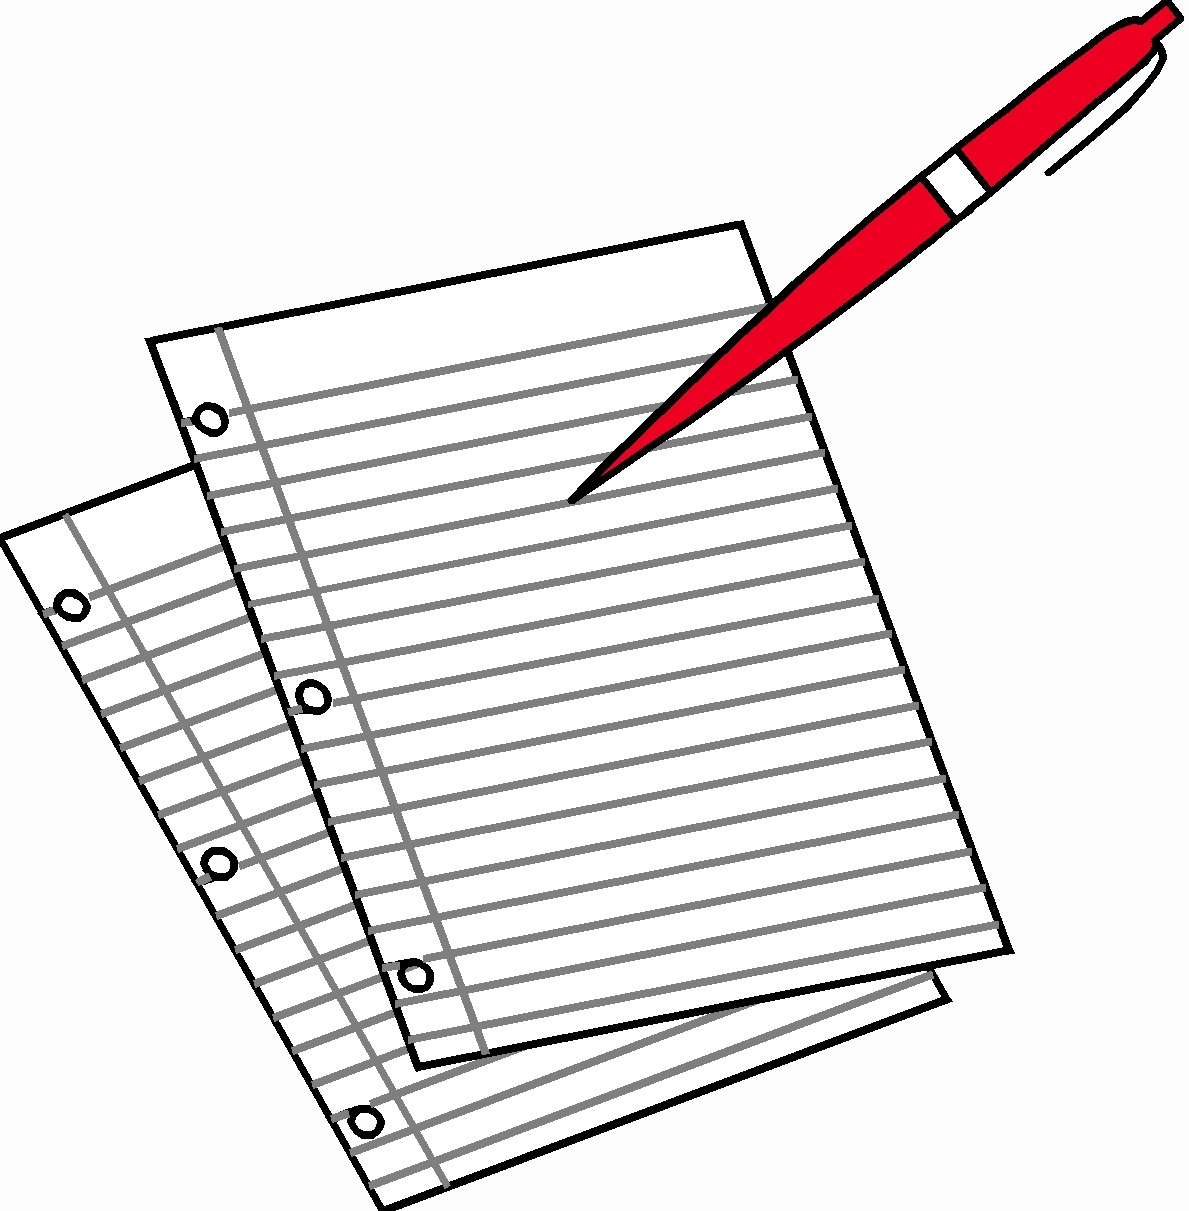 Free Writing Paper Cliparts, Download Free Clip Art, Free.